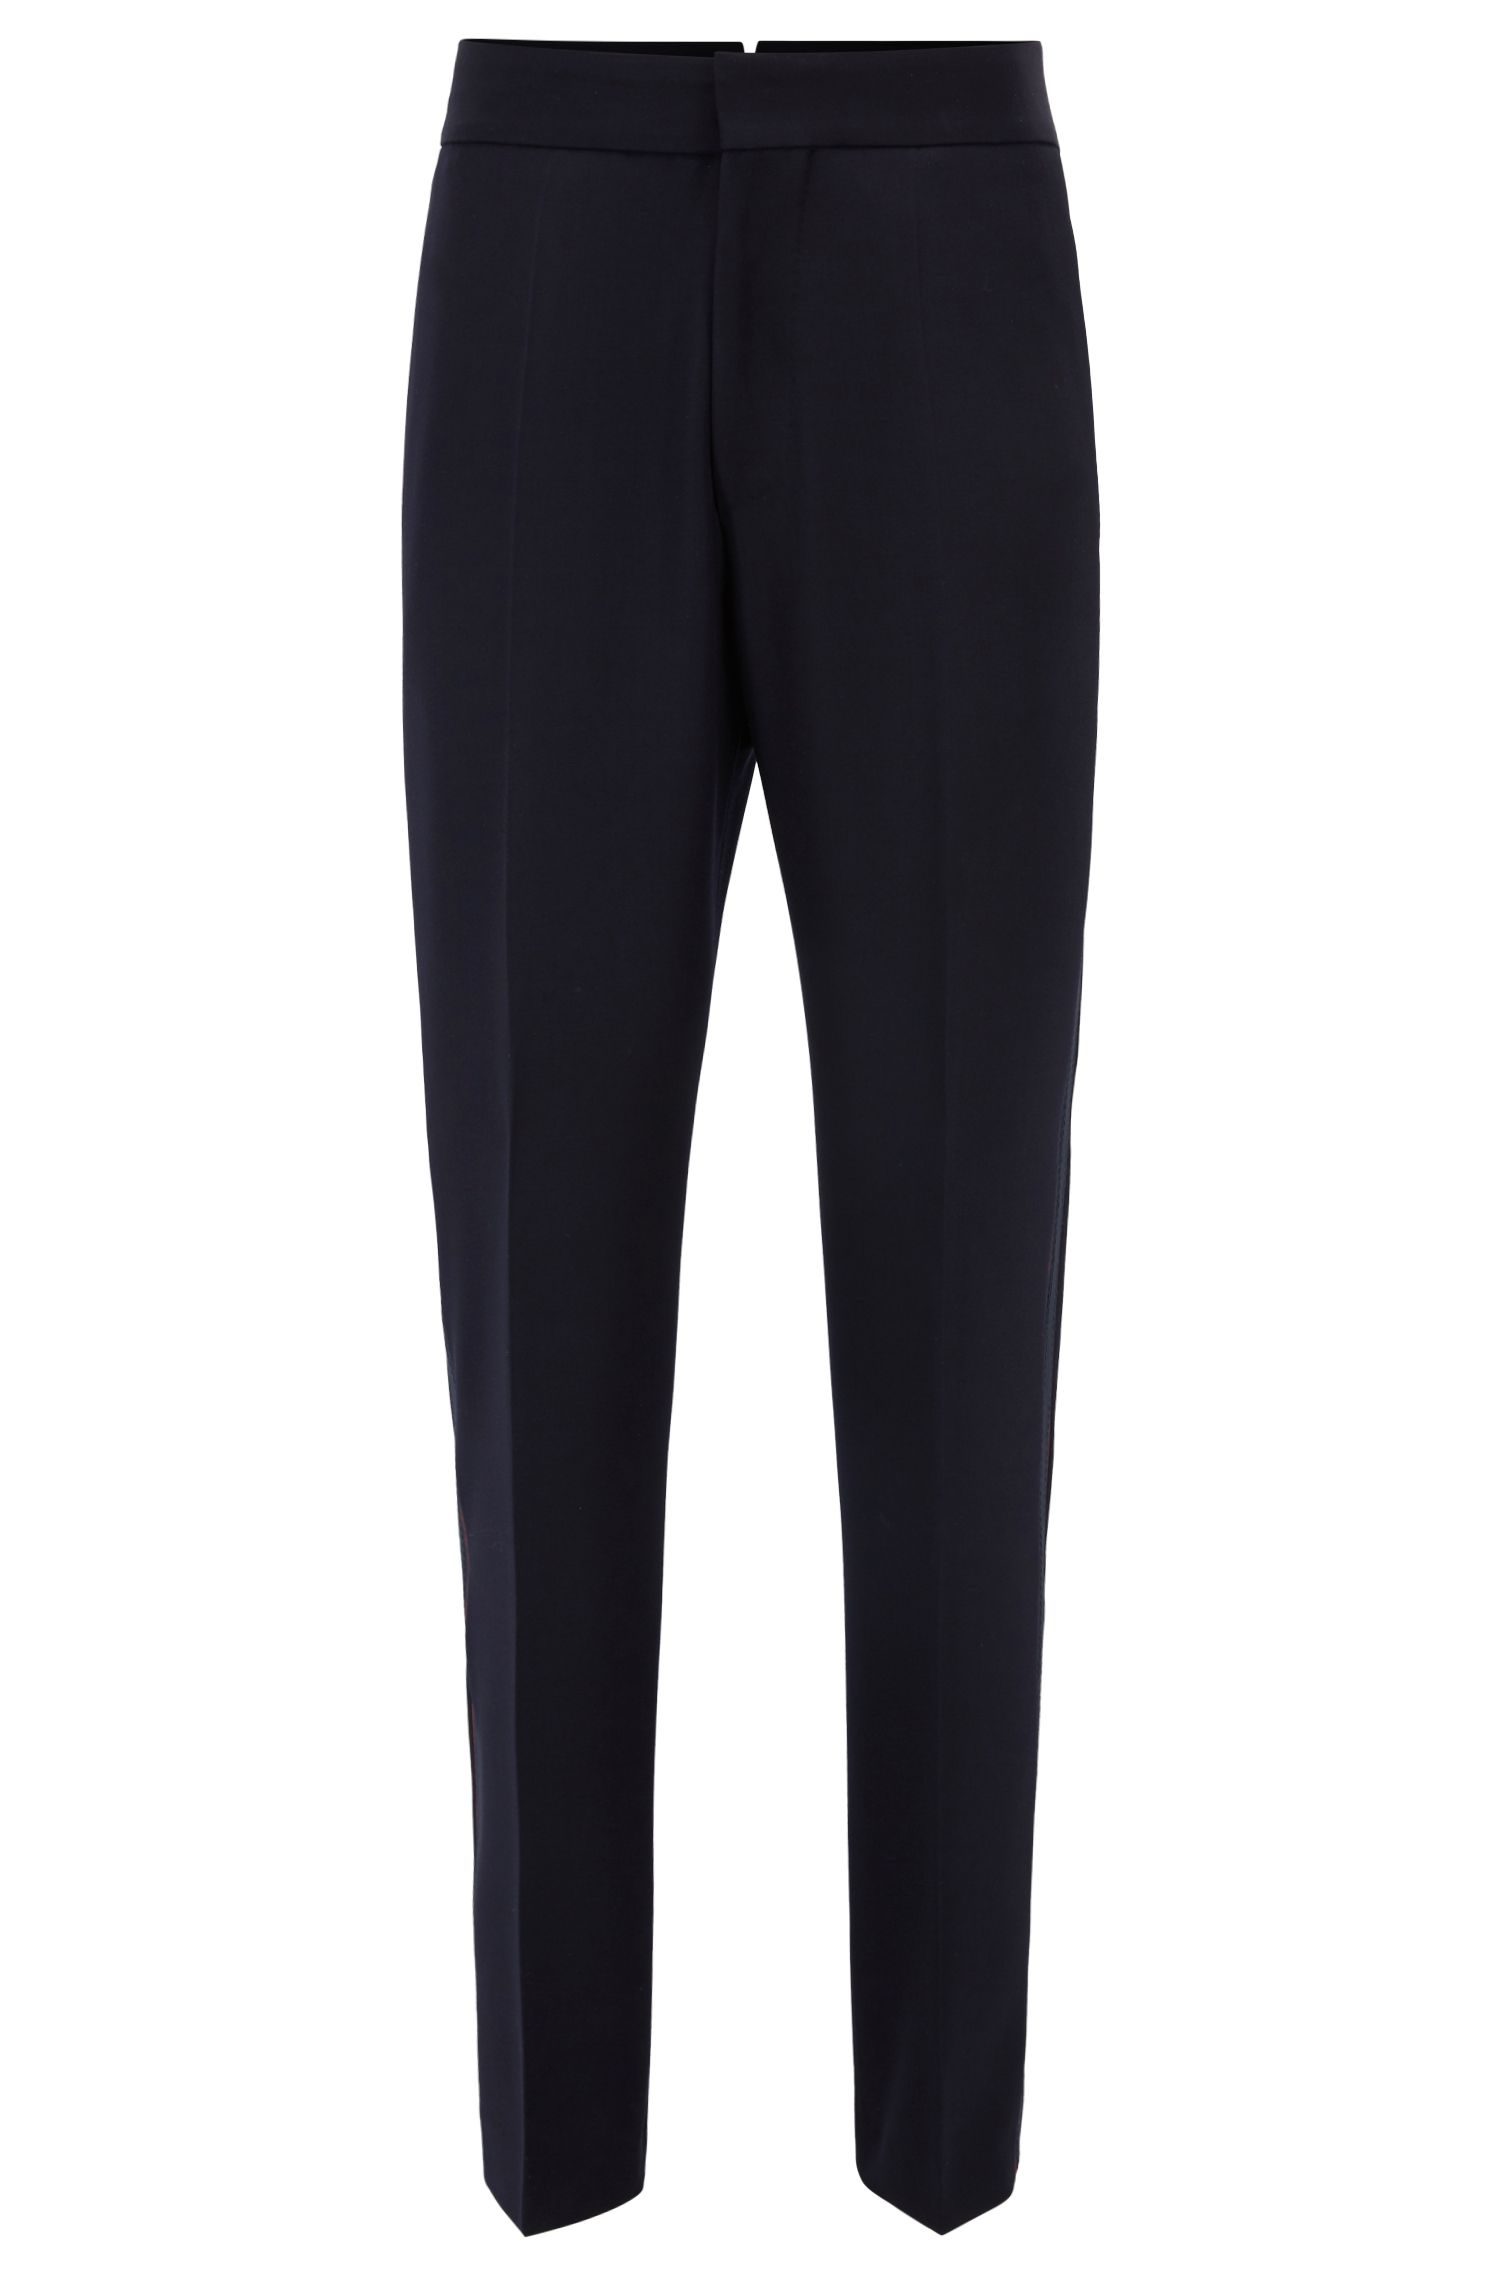 Runway Edition virgin wool trousers with taped side seam